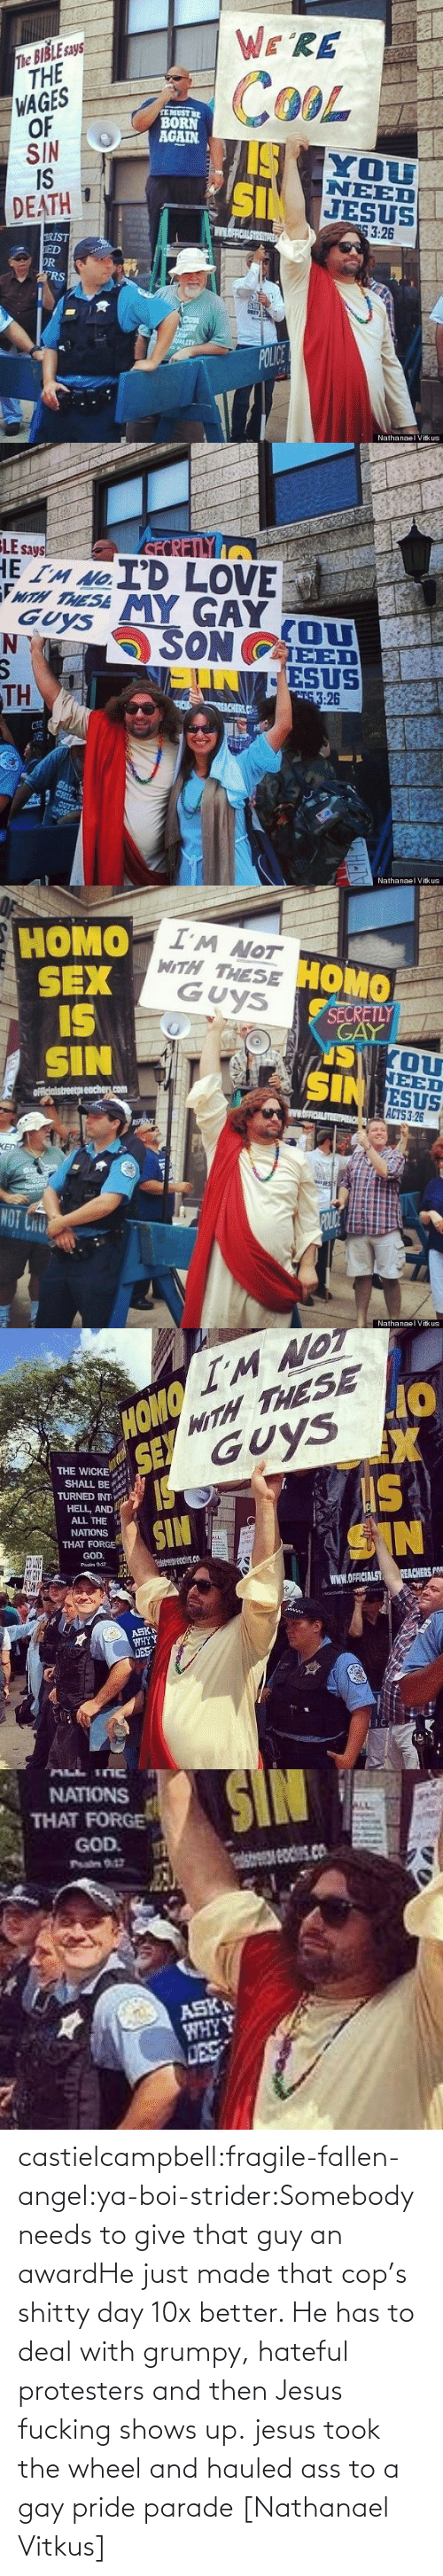 Recap: castielcampbell:fragile-fallen-angel:ya-boi-strider:Somebody needs to give that guy an awardHe just made that cop's shitty day 10x better. He has to deal with grumpy, hateful protesters and thenJesus fucking shows up. jesus took the wheel and hauled ass to a gay pride parade[Nathanael Vitkus]